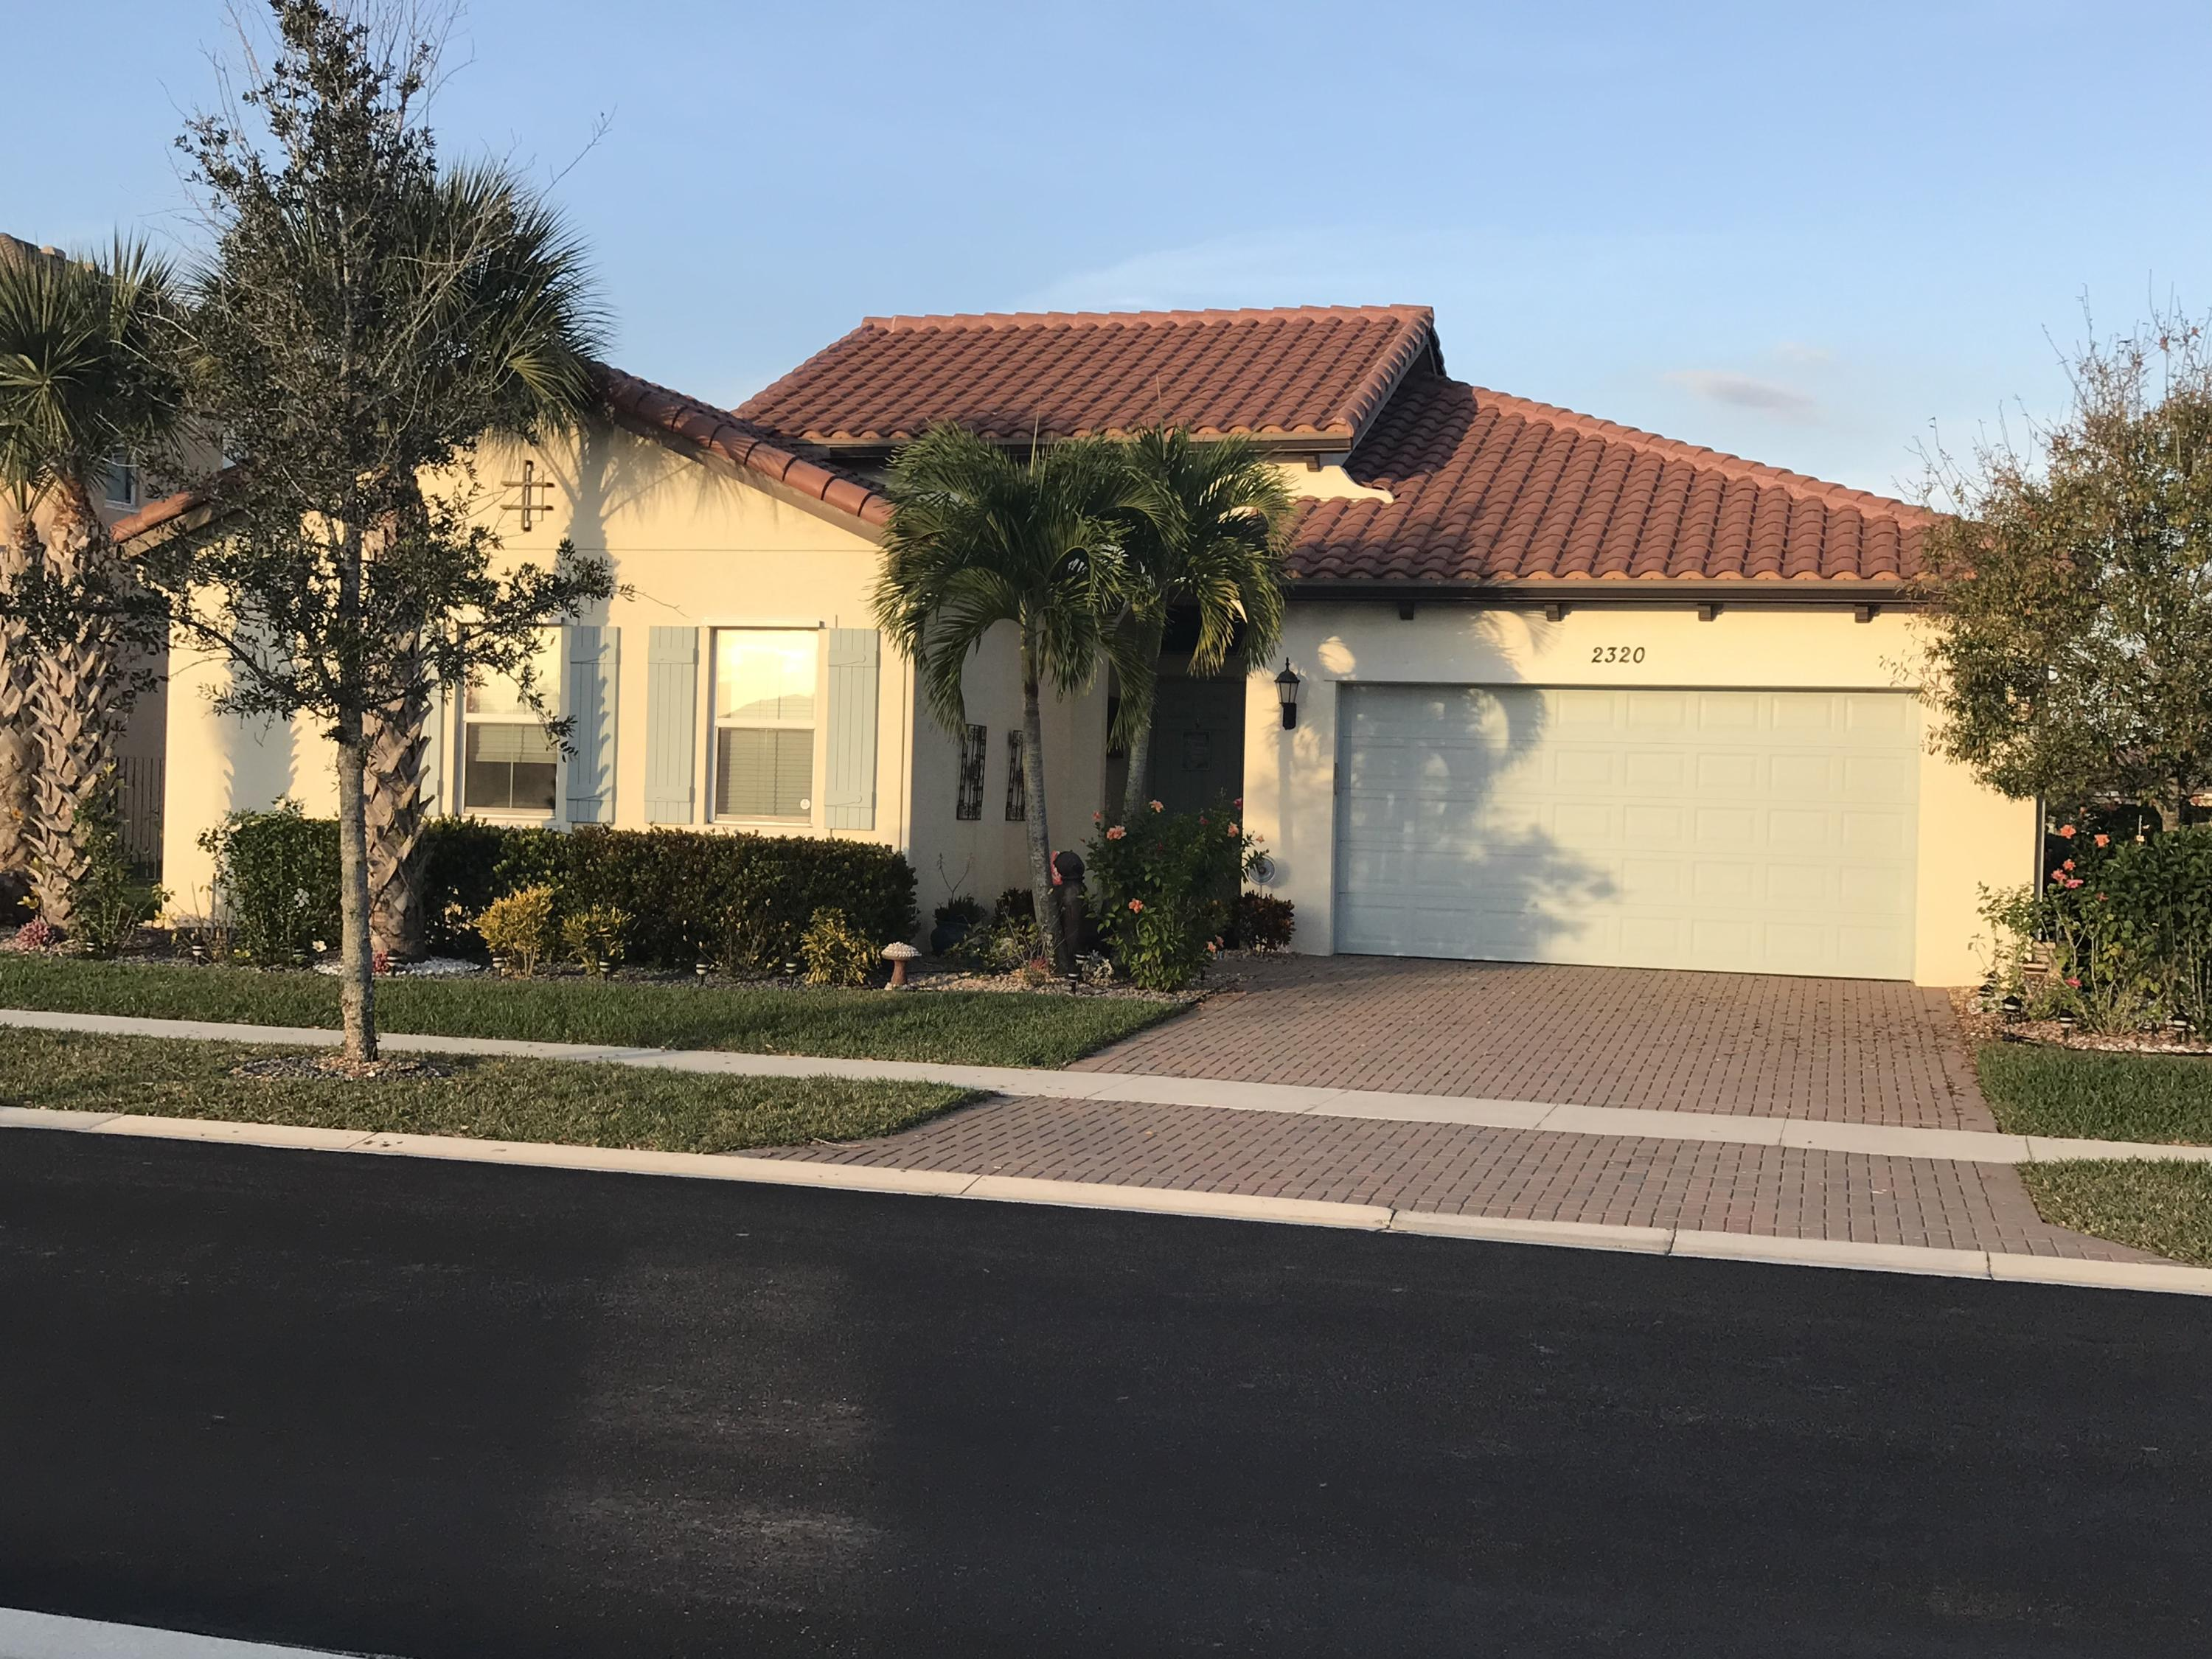 2320 Bellarosa Circle - Royal Palm Beach, Florida